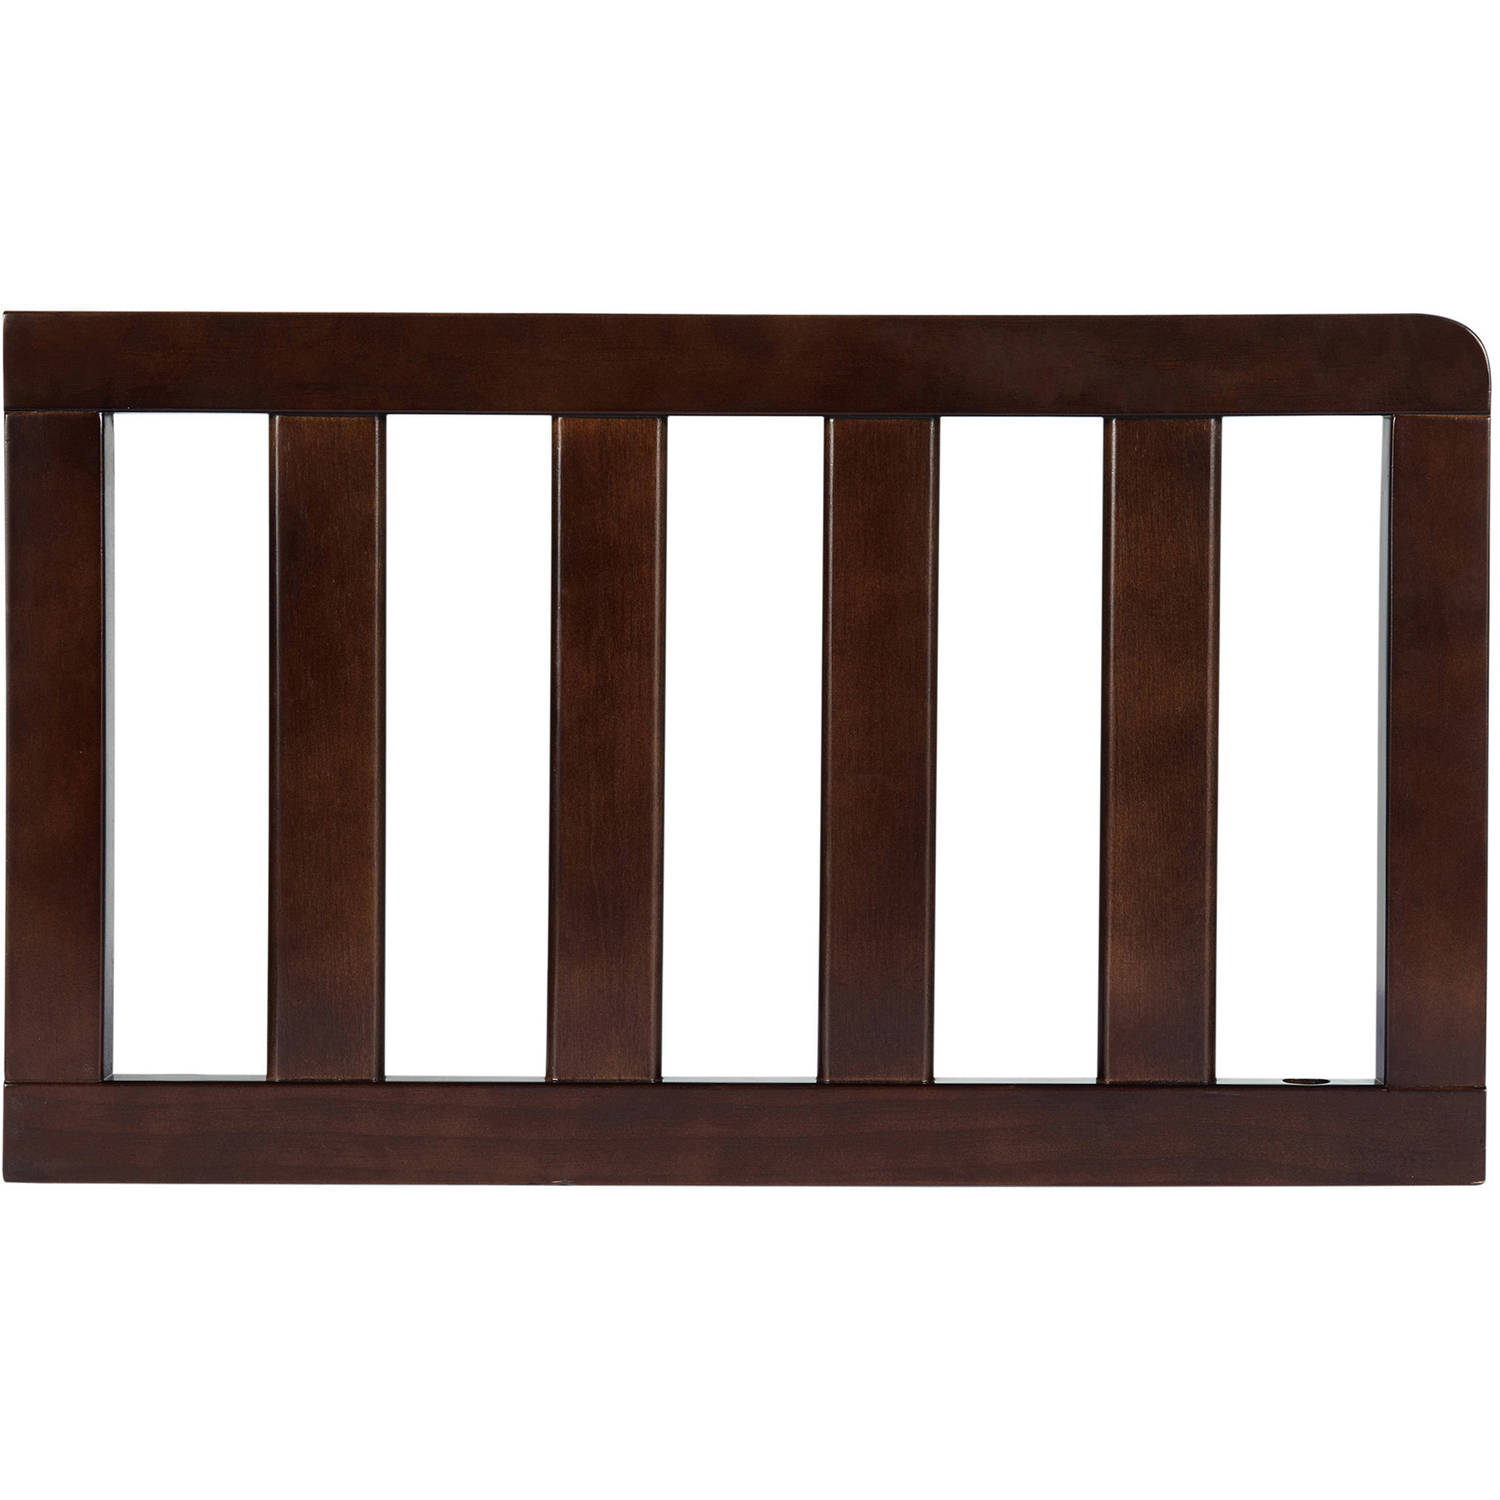 Delta Children Toddler Guardrail 0080, Choose Your Finish